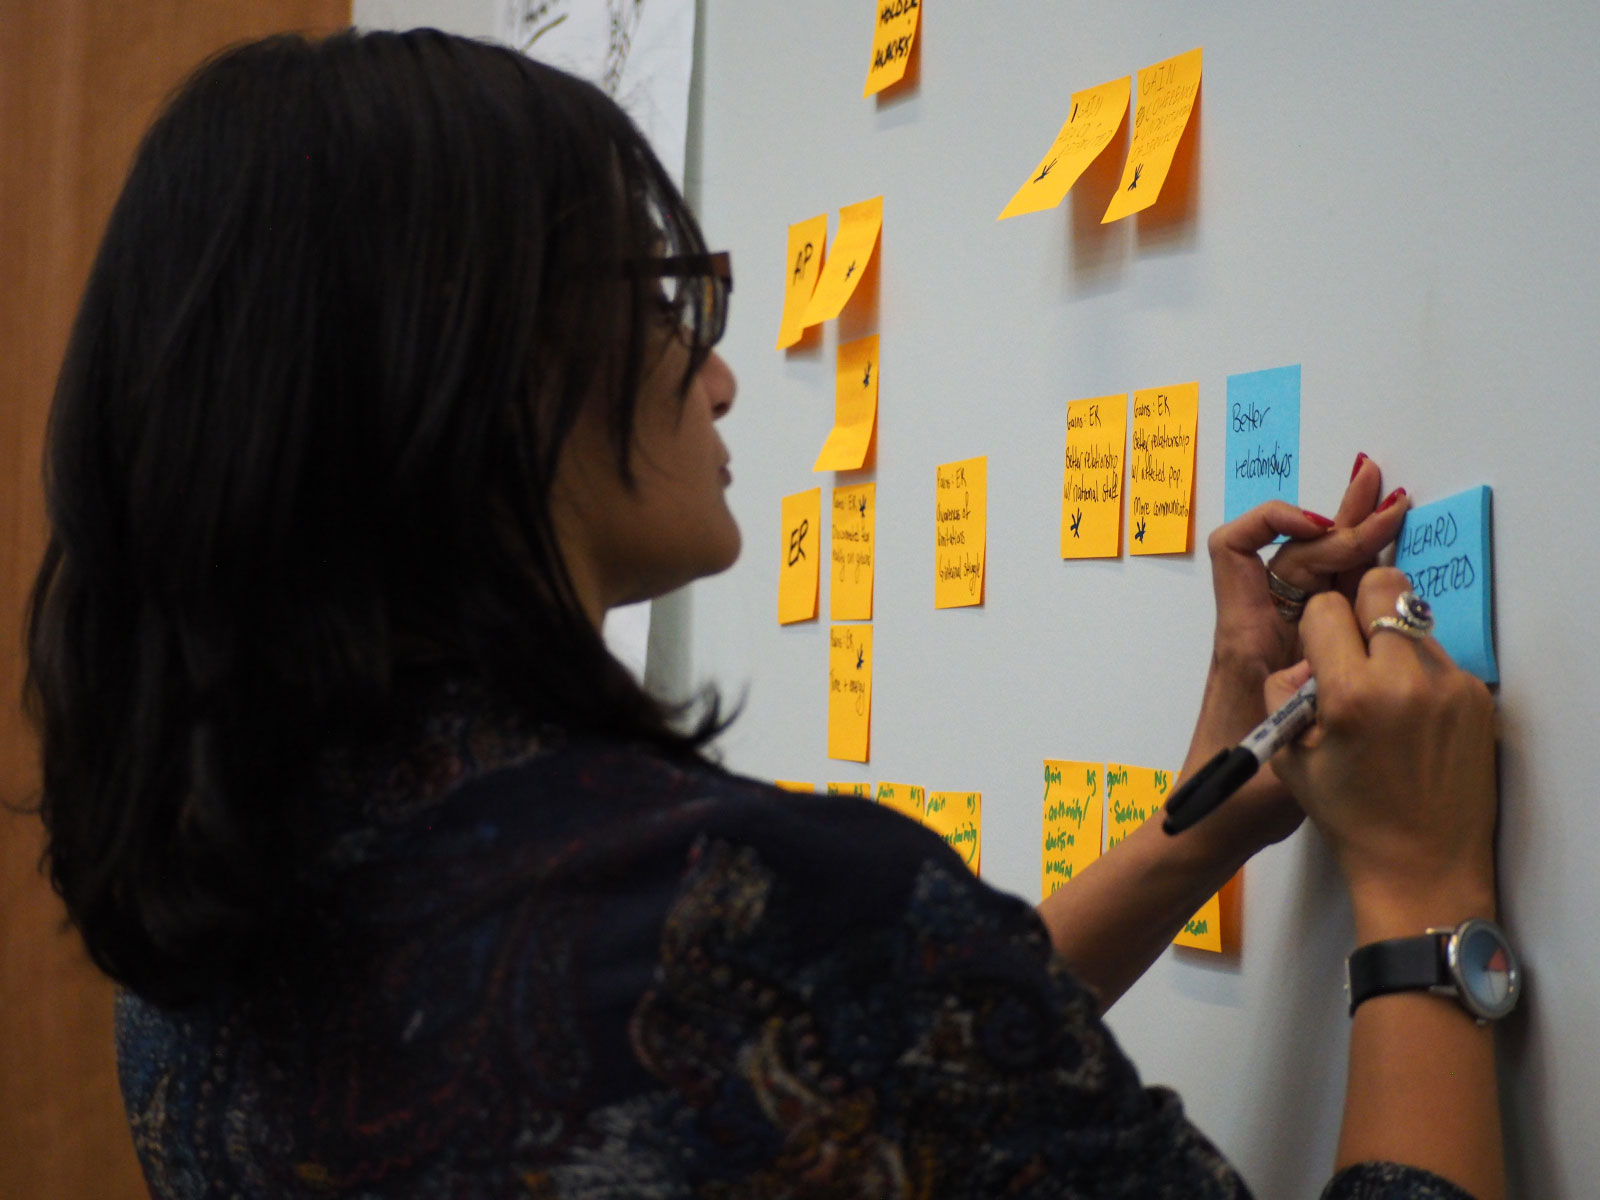 Emergency Data Science participant writes on a sticky note